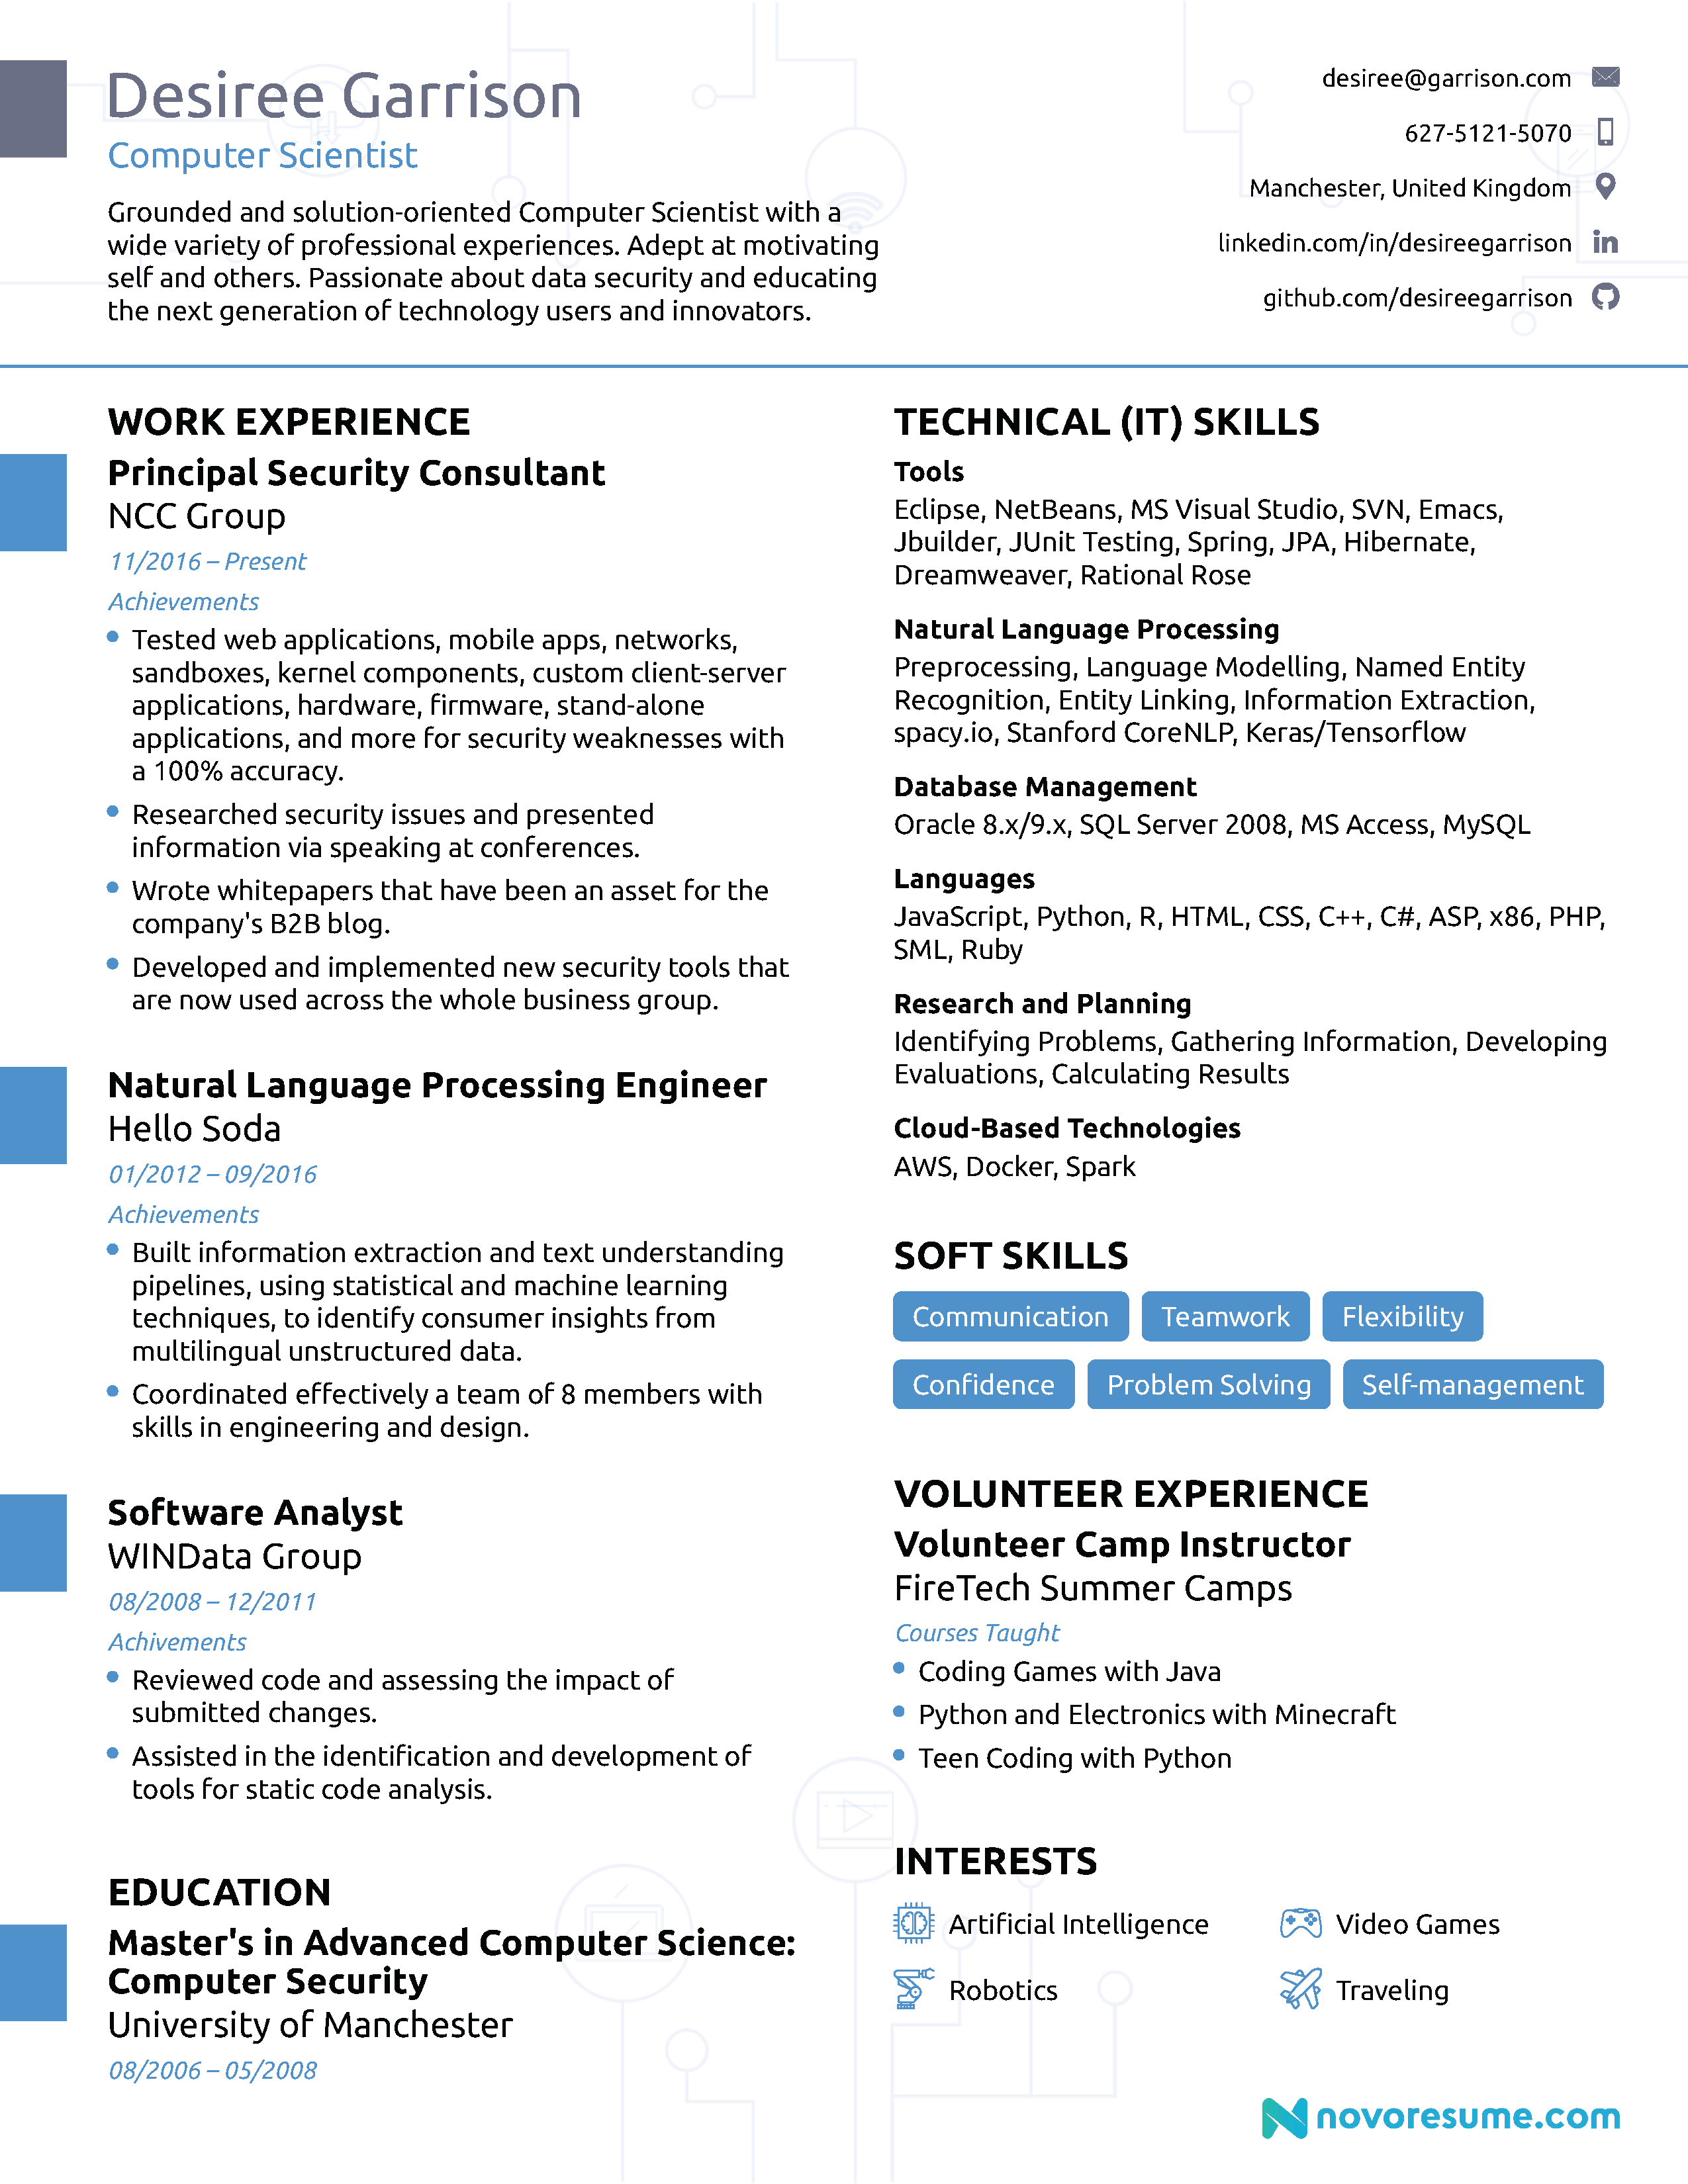 Computer Science Resume [2020] - Guide & Examples